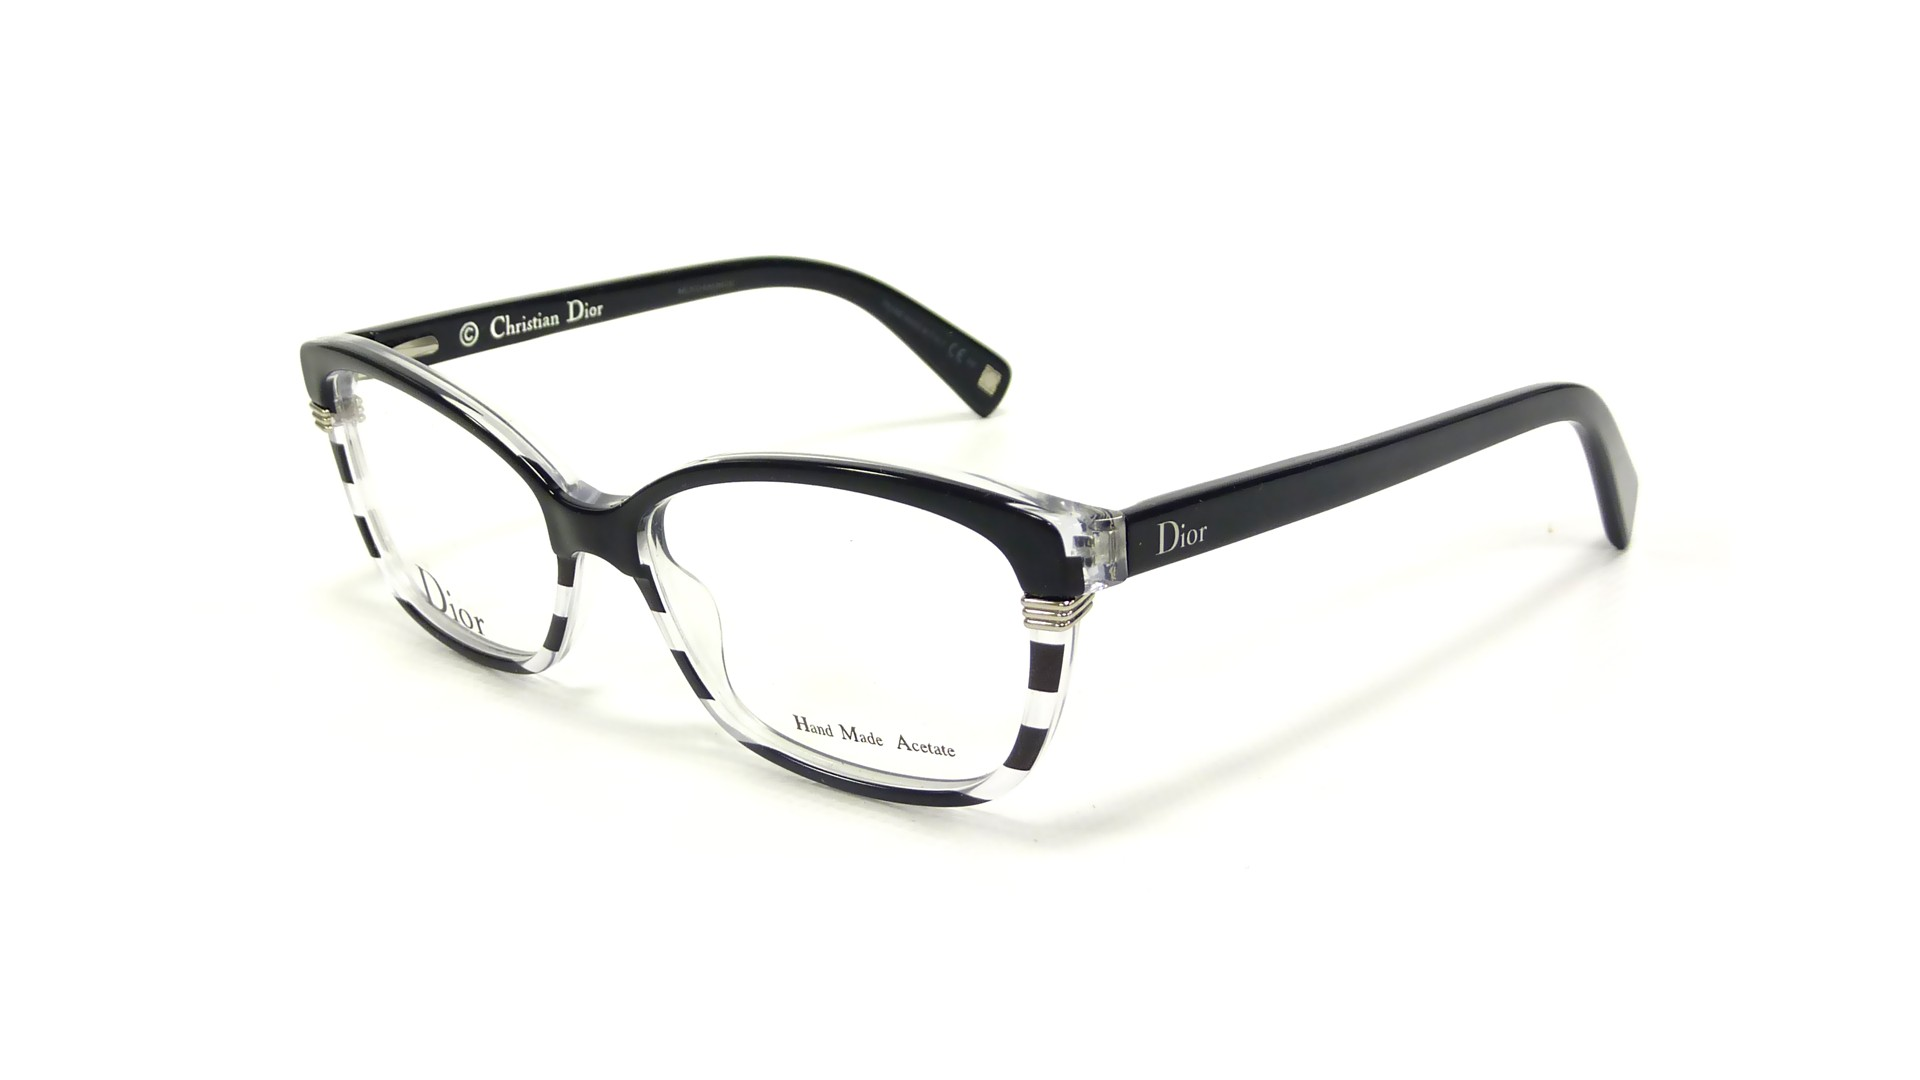 Replica Designer Glasses Frames